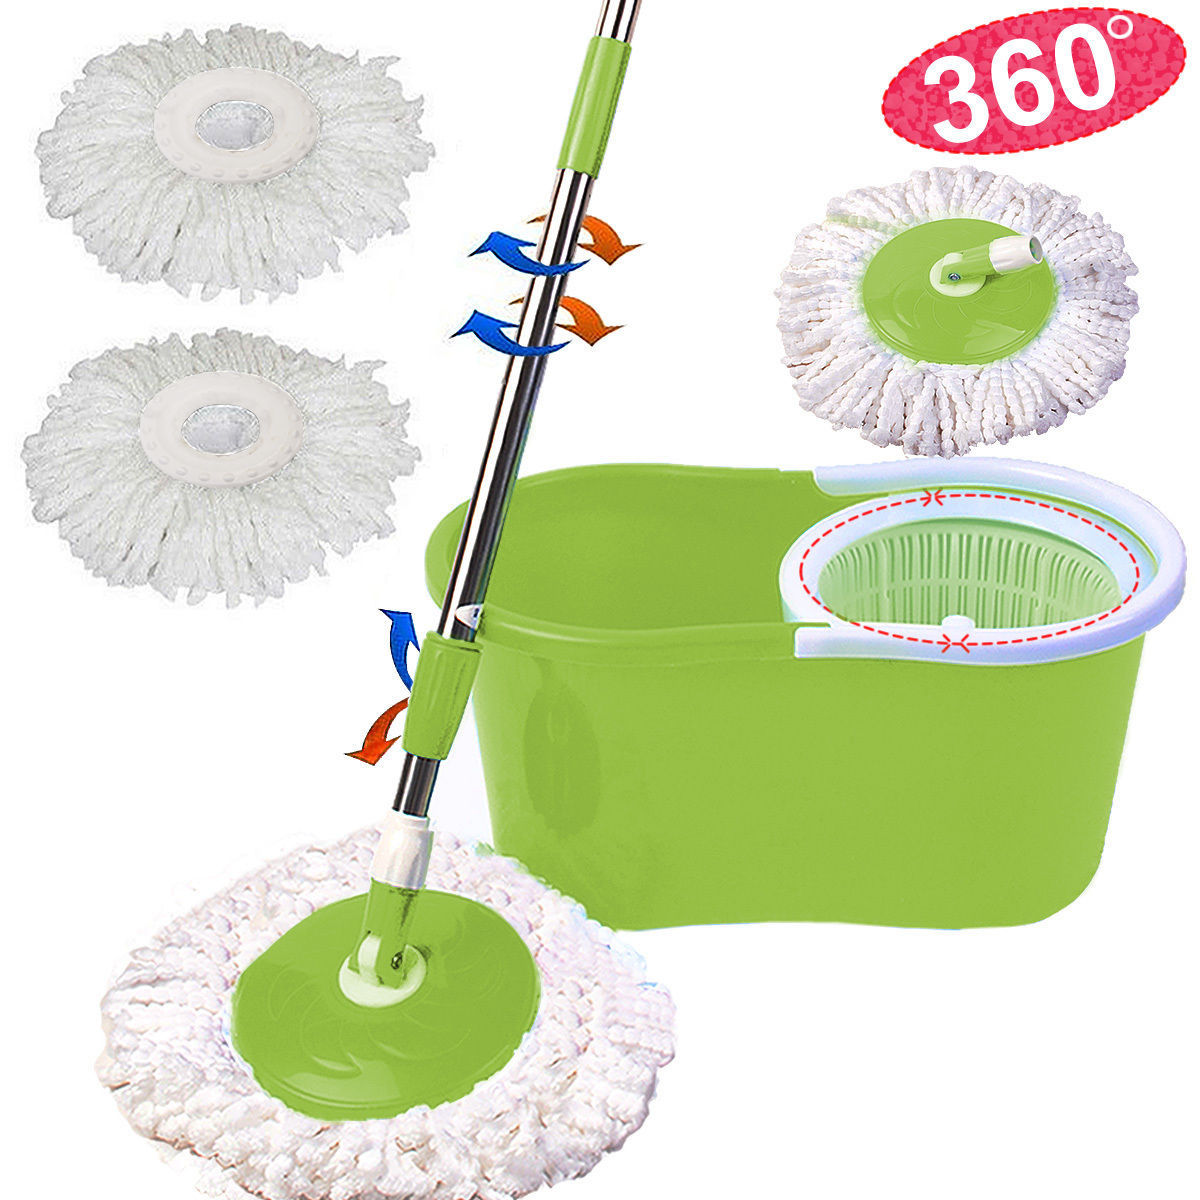 Zimtown Microfiber Spin Mop wi...